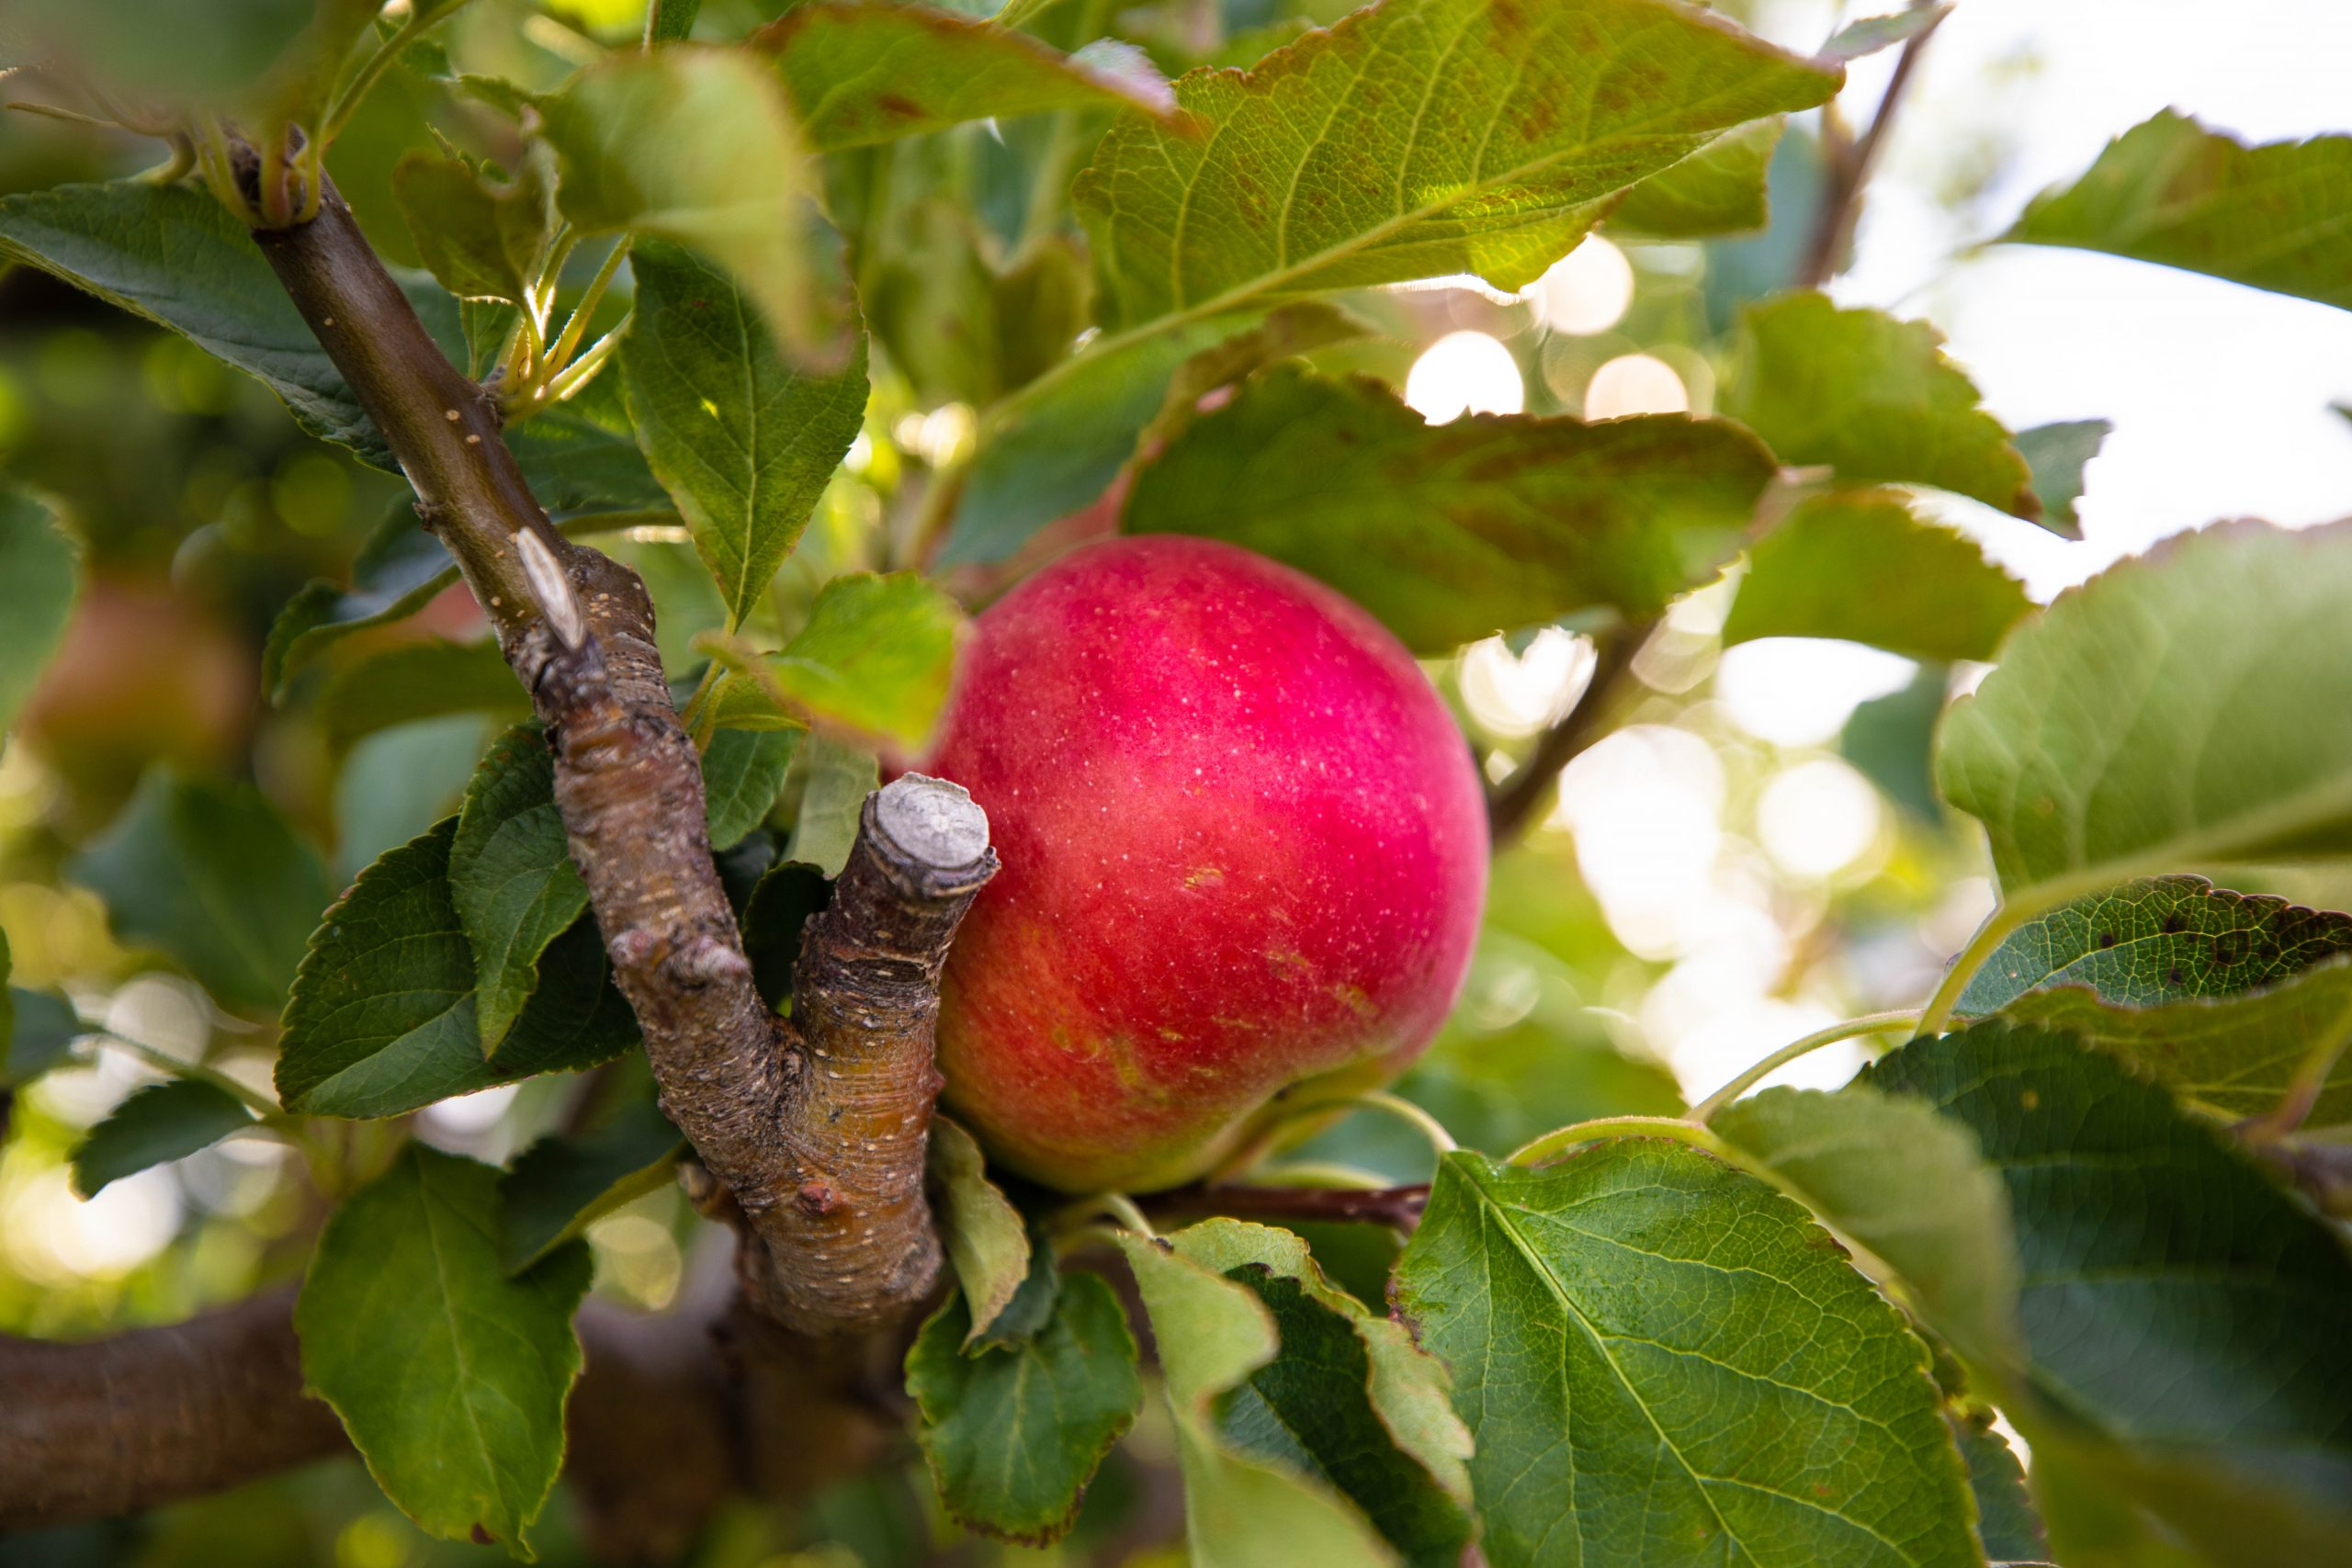 Almar's Organic Apple Orchard Farm Our Apple Orchard Harvest Apple Picking in Fall in Michigan Midwest Fall Itinerary by Annie Fairfax